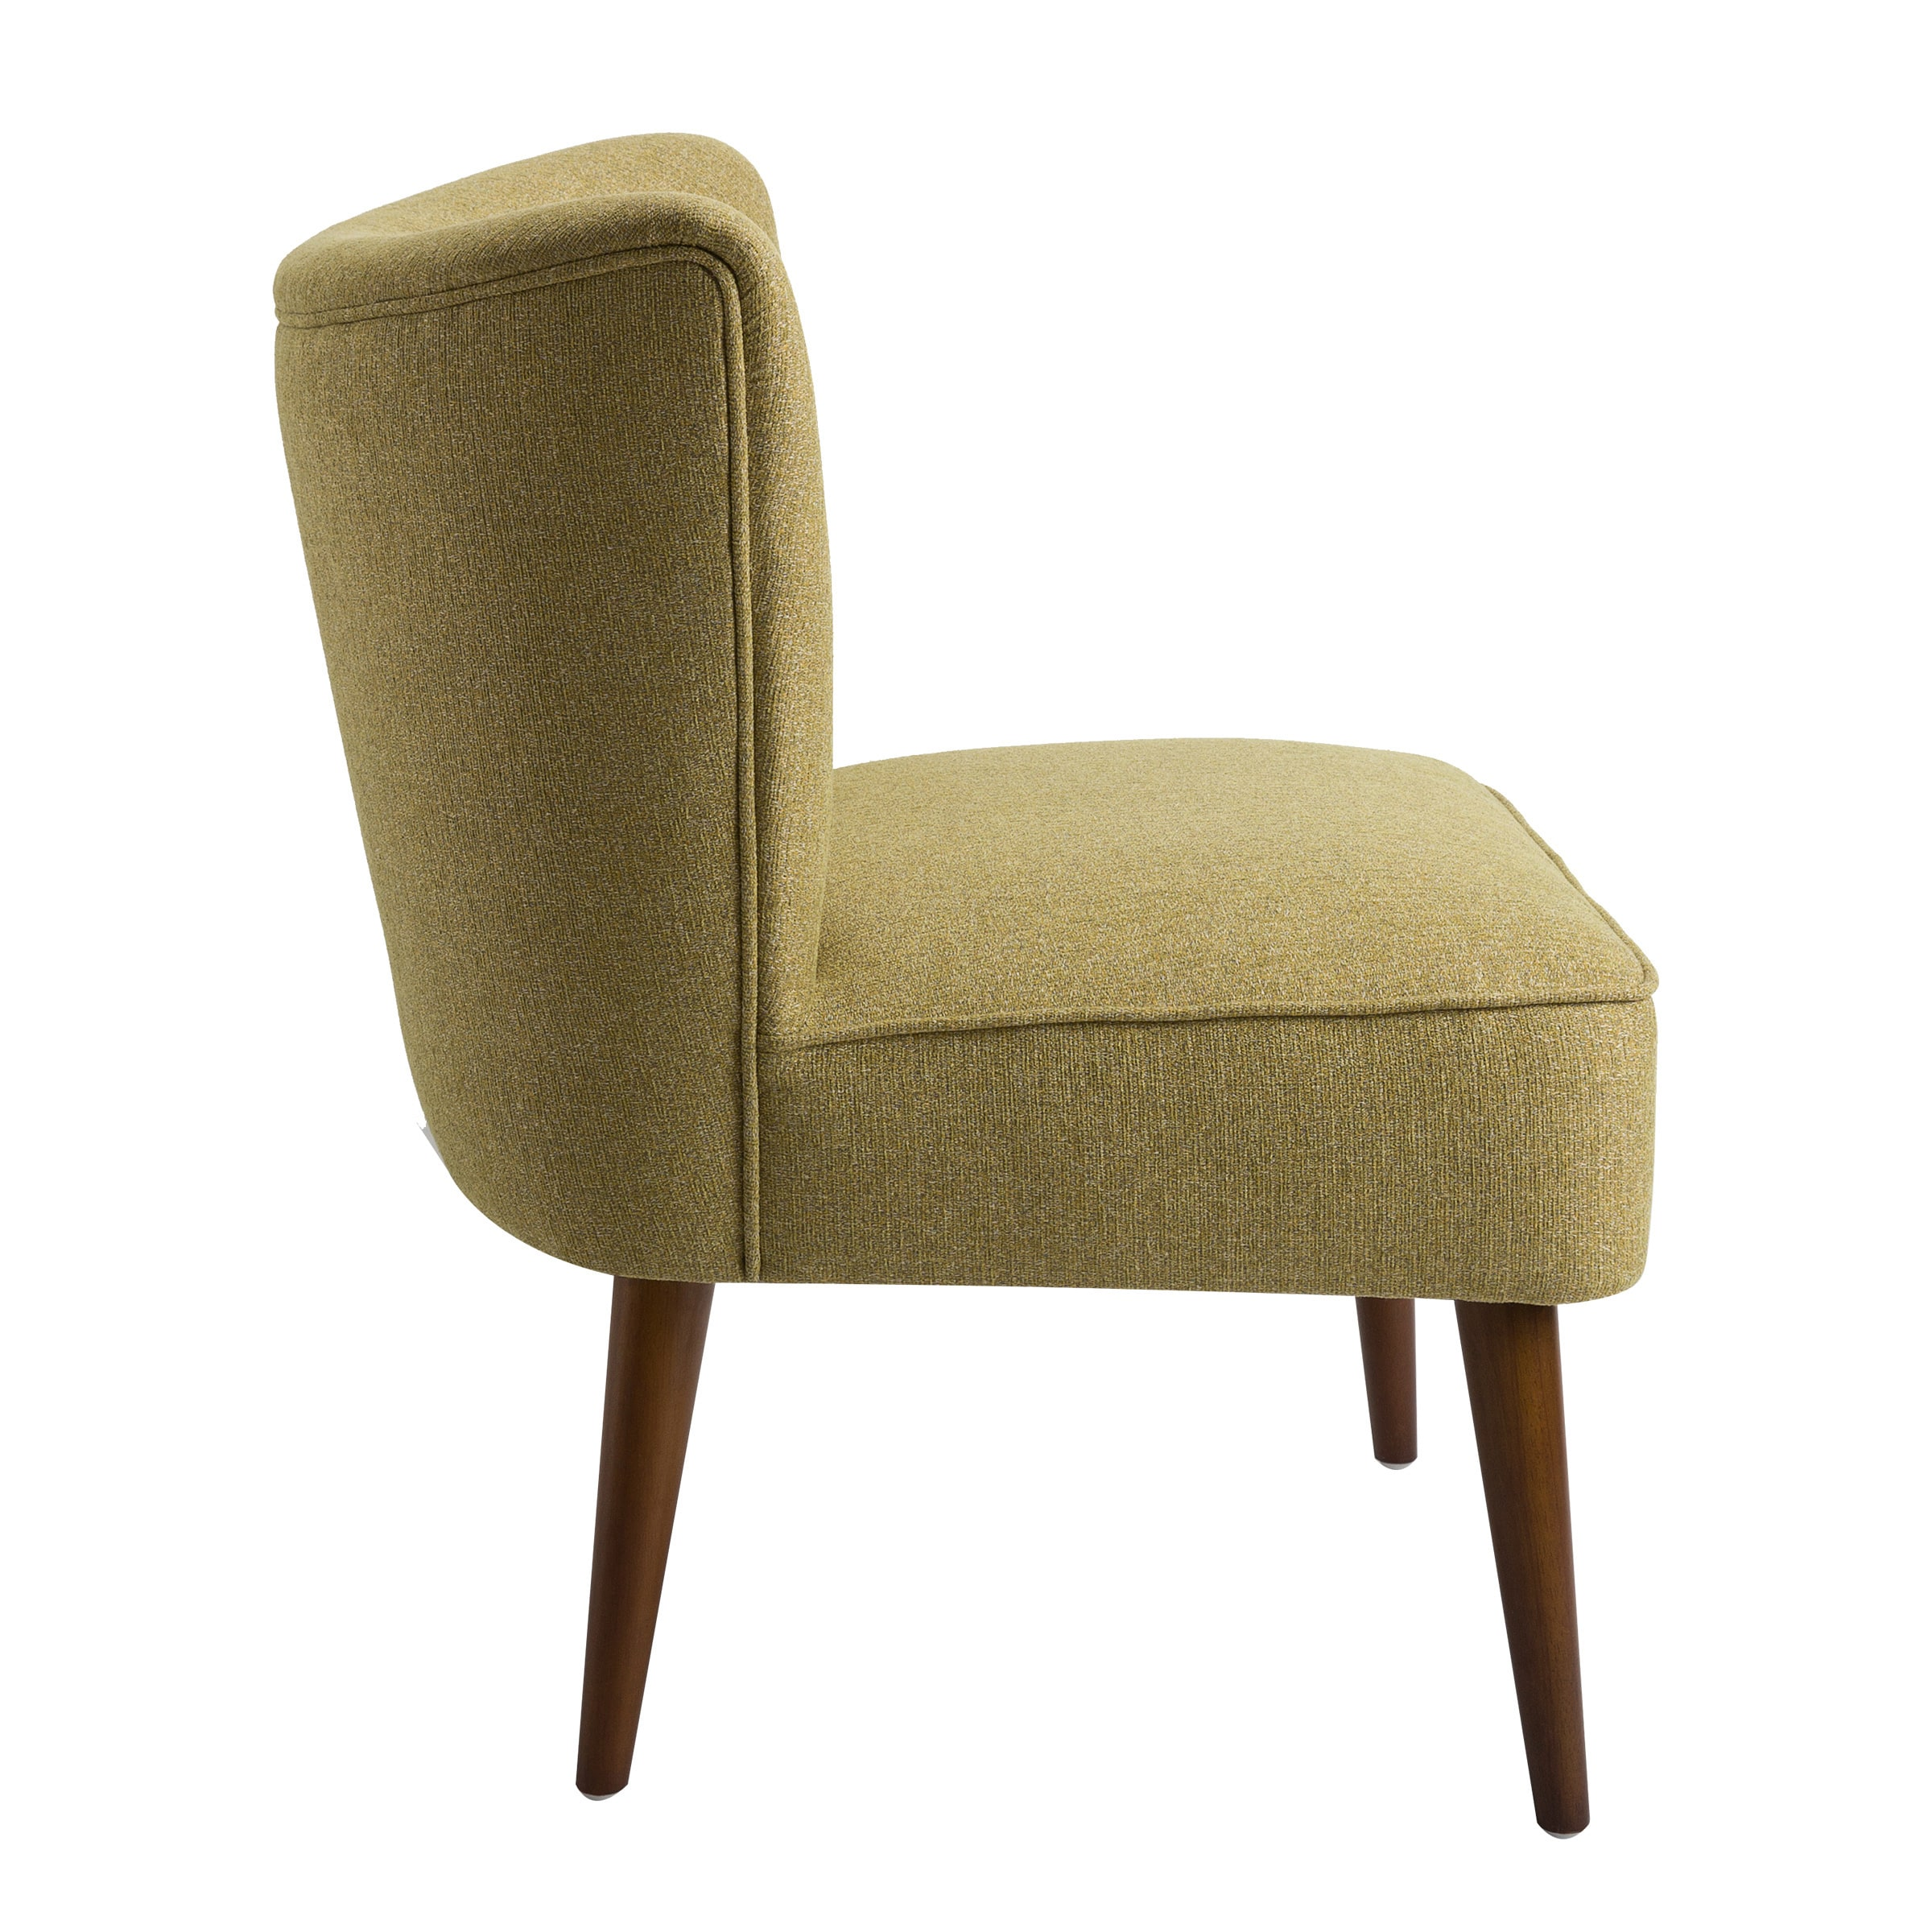 Superieur Shop HomePop Chadwick Armless Accent Chair   Green   On Sale   Free  Shipping Today   Overstock.com   15925191